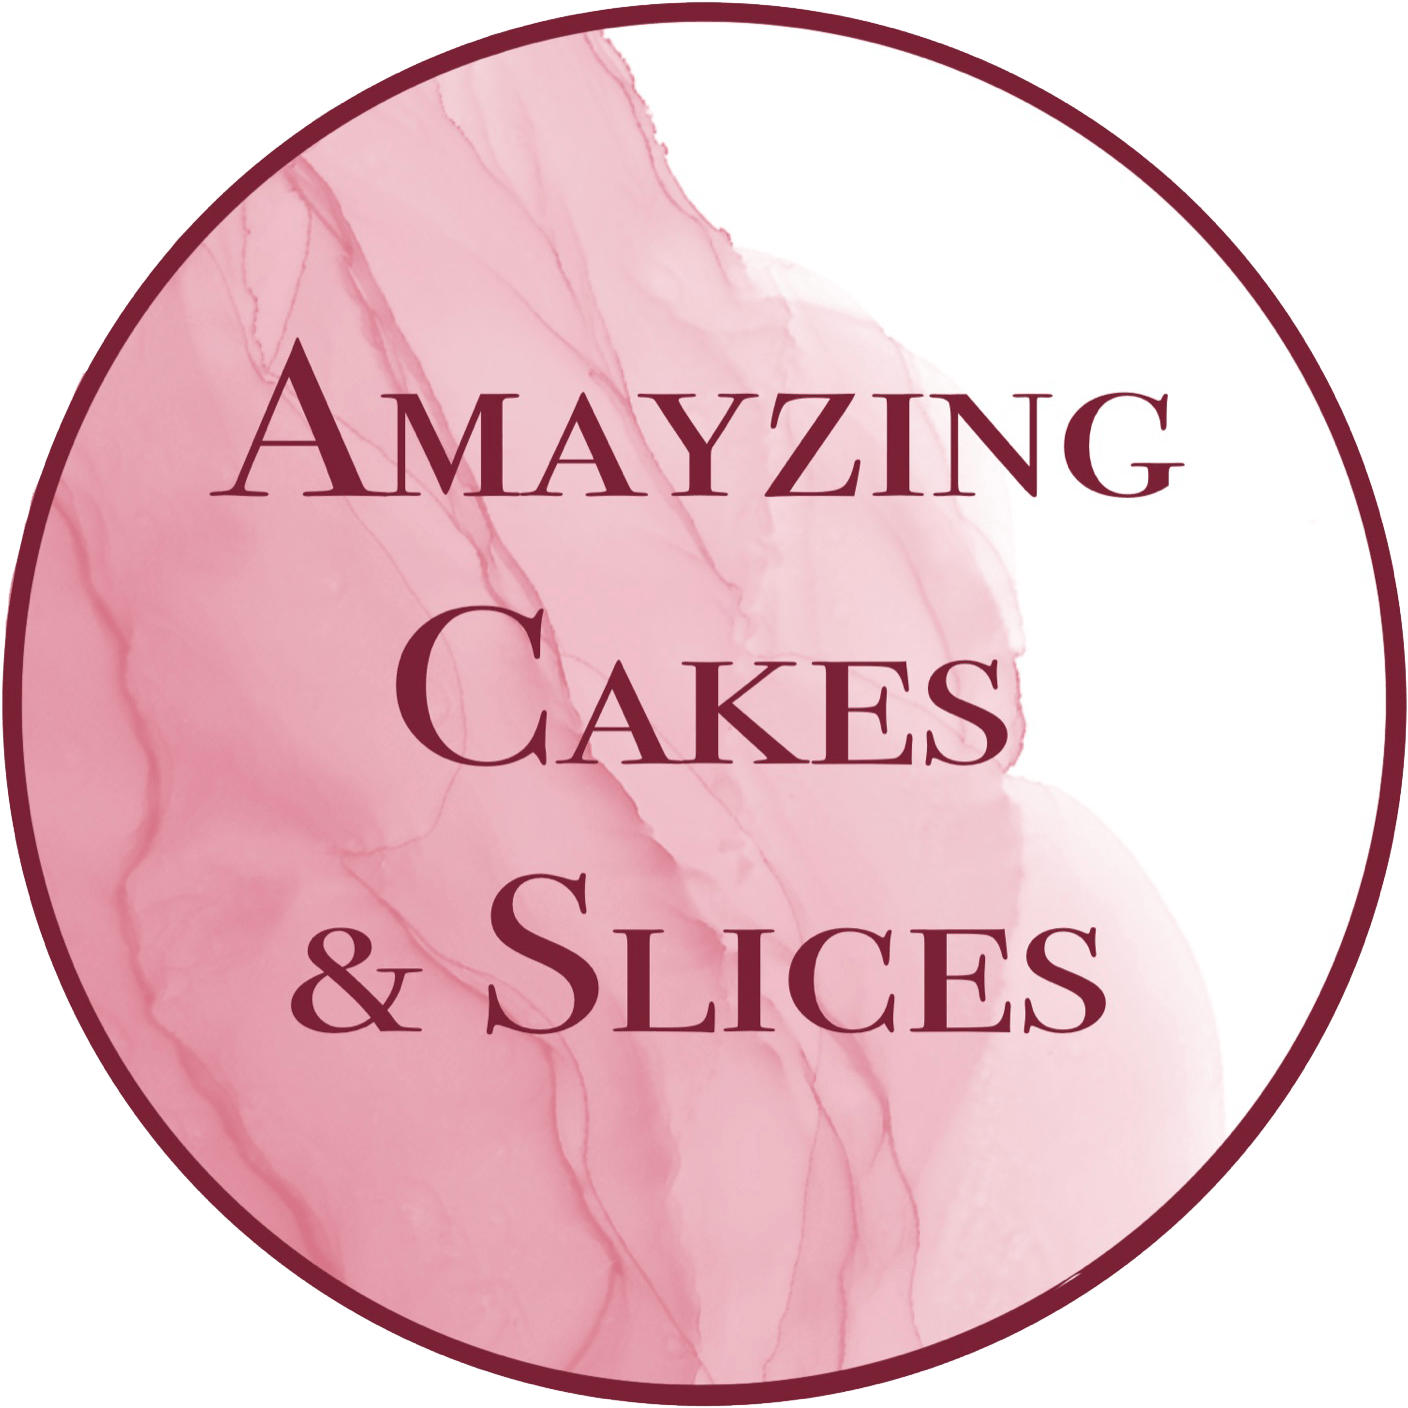 Amayzing Cakes & Slices